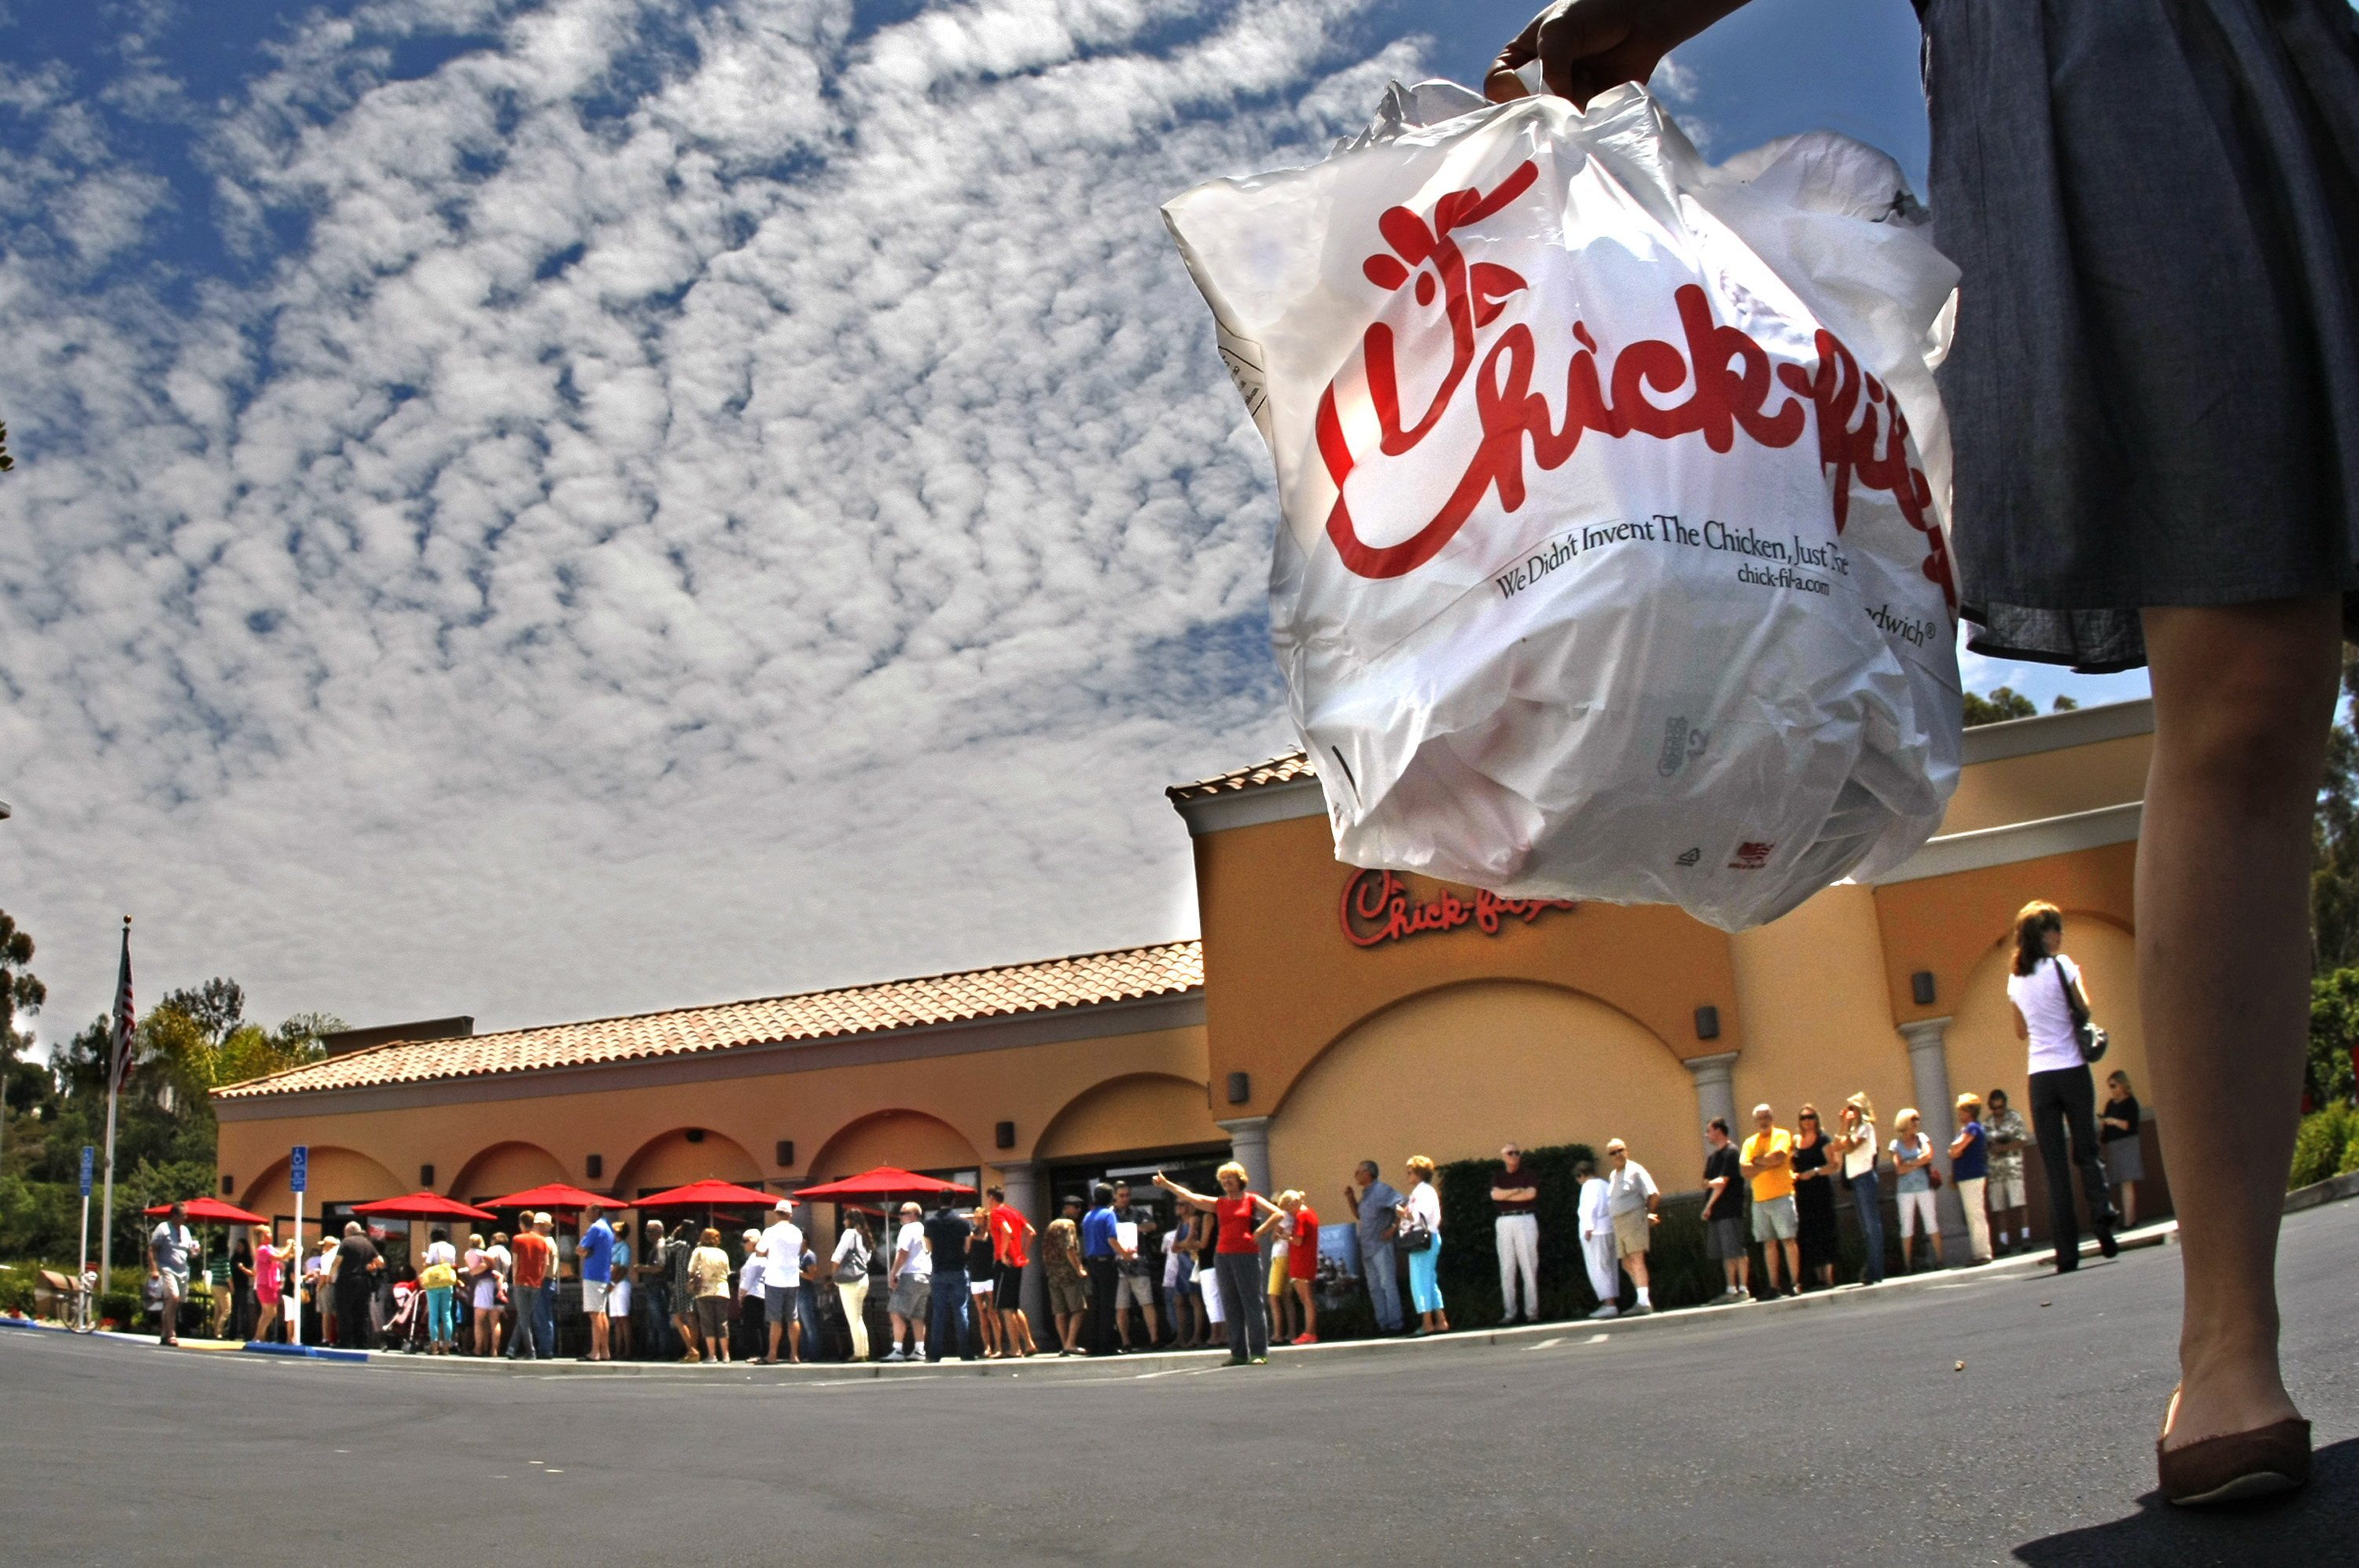 San Antonio under federal investigation for booting Chick